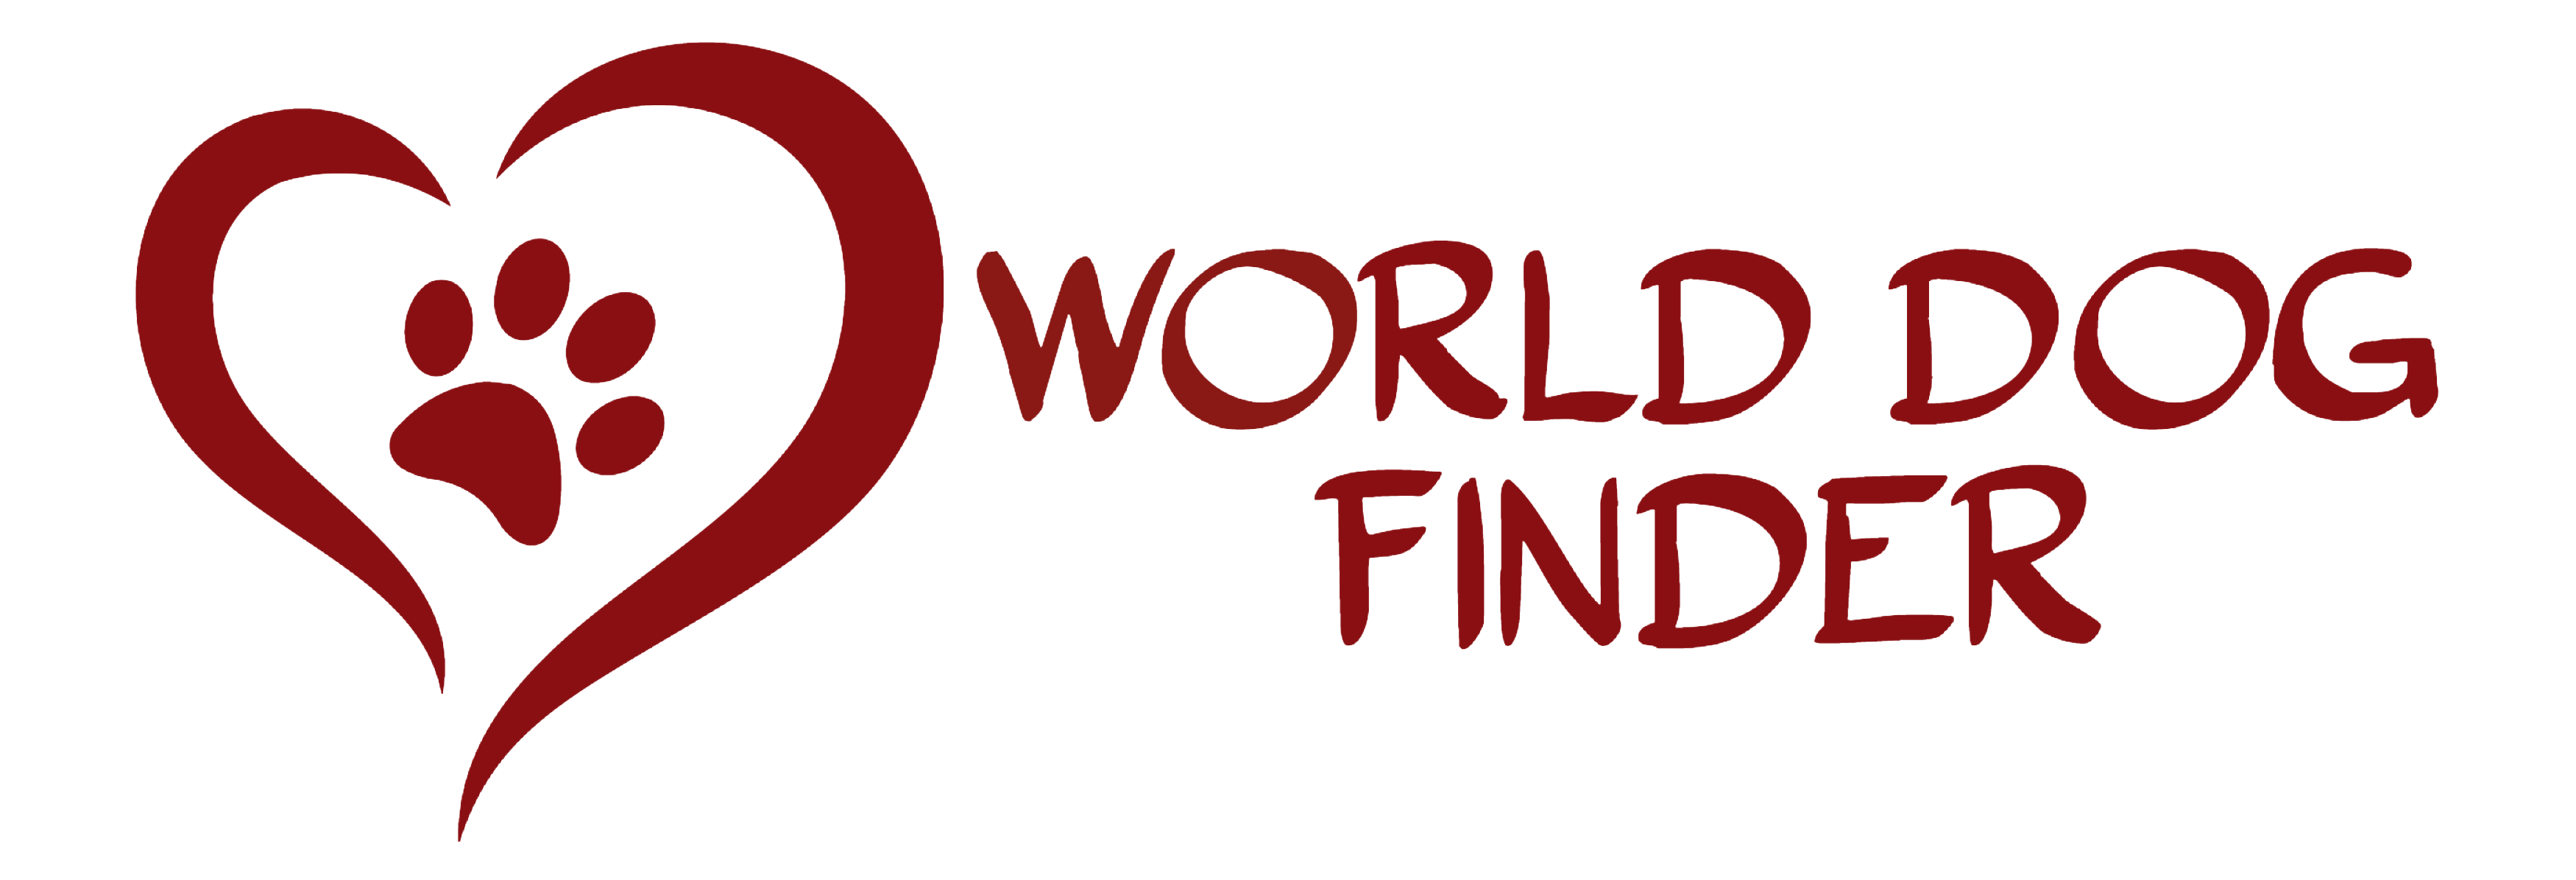 World Dog Finder - buy or adopt dogs